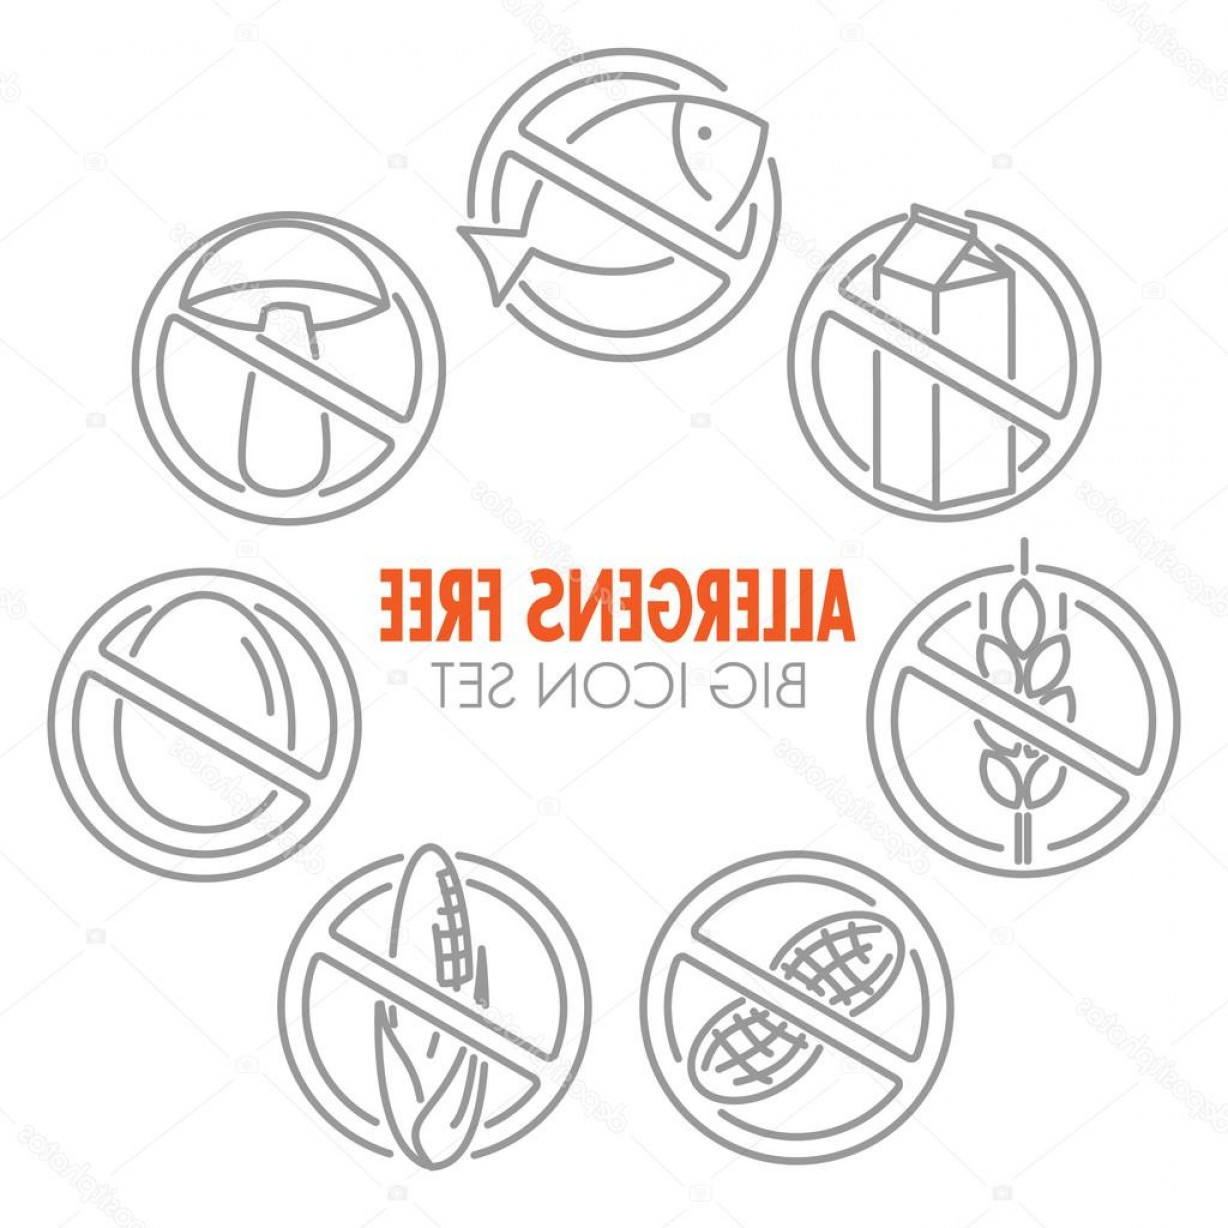 Vectores Para Descargar Gratis: Stock Illustration Vector Icons For Allergens Free